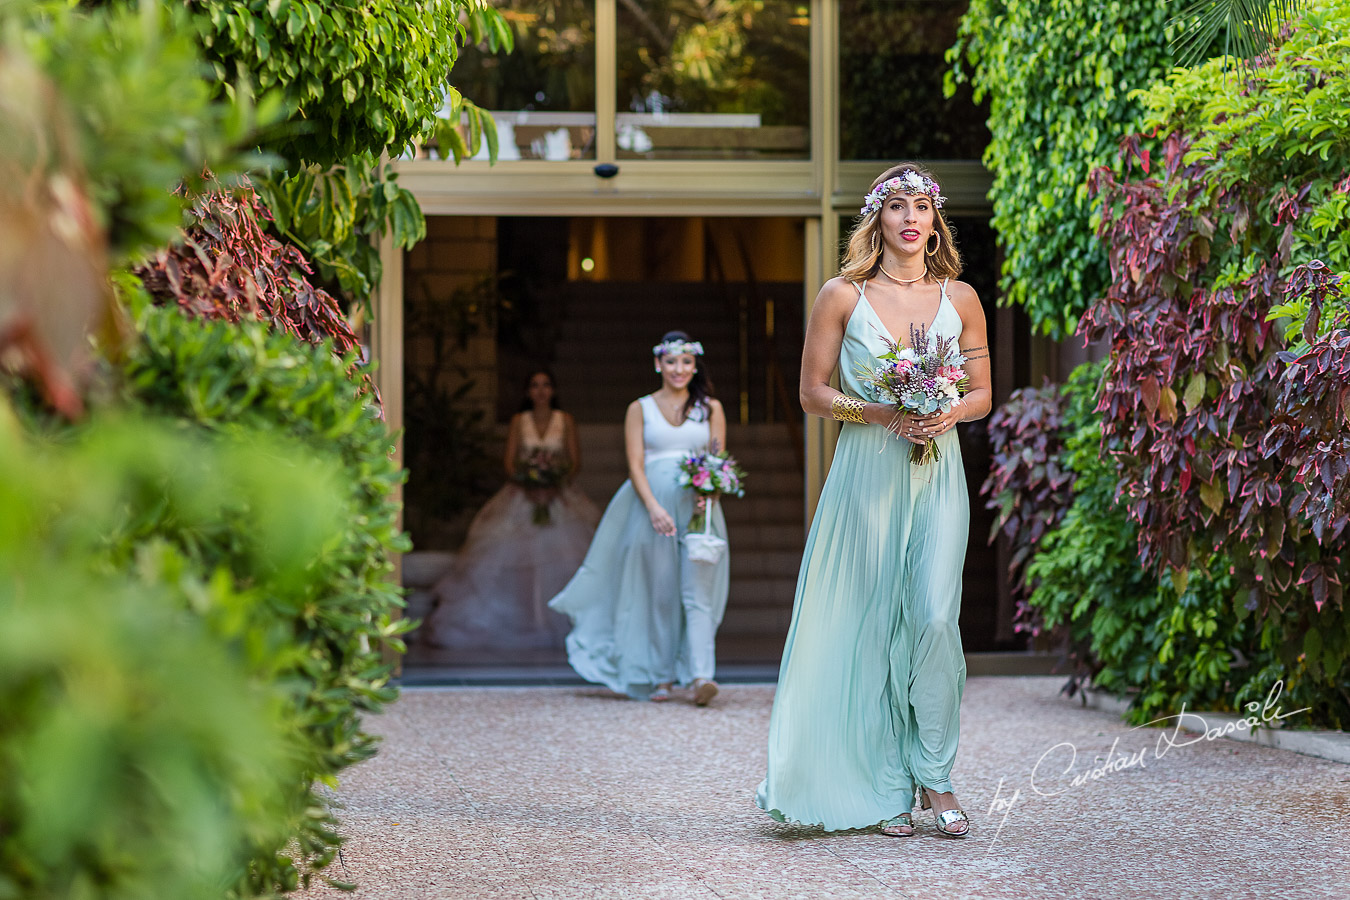 Bridesmaids photographed during the ceremony, as part of an Exclusive Wedding photography at Grand Resort Limassol, captured by Cyprus Wedding Photographer Cristian Dascalu.